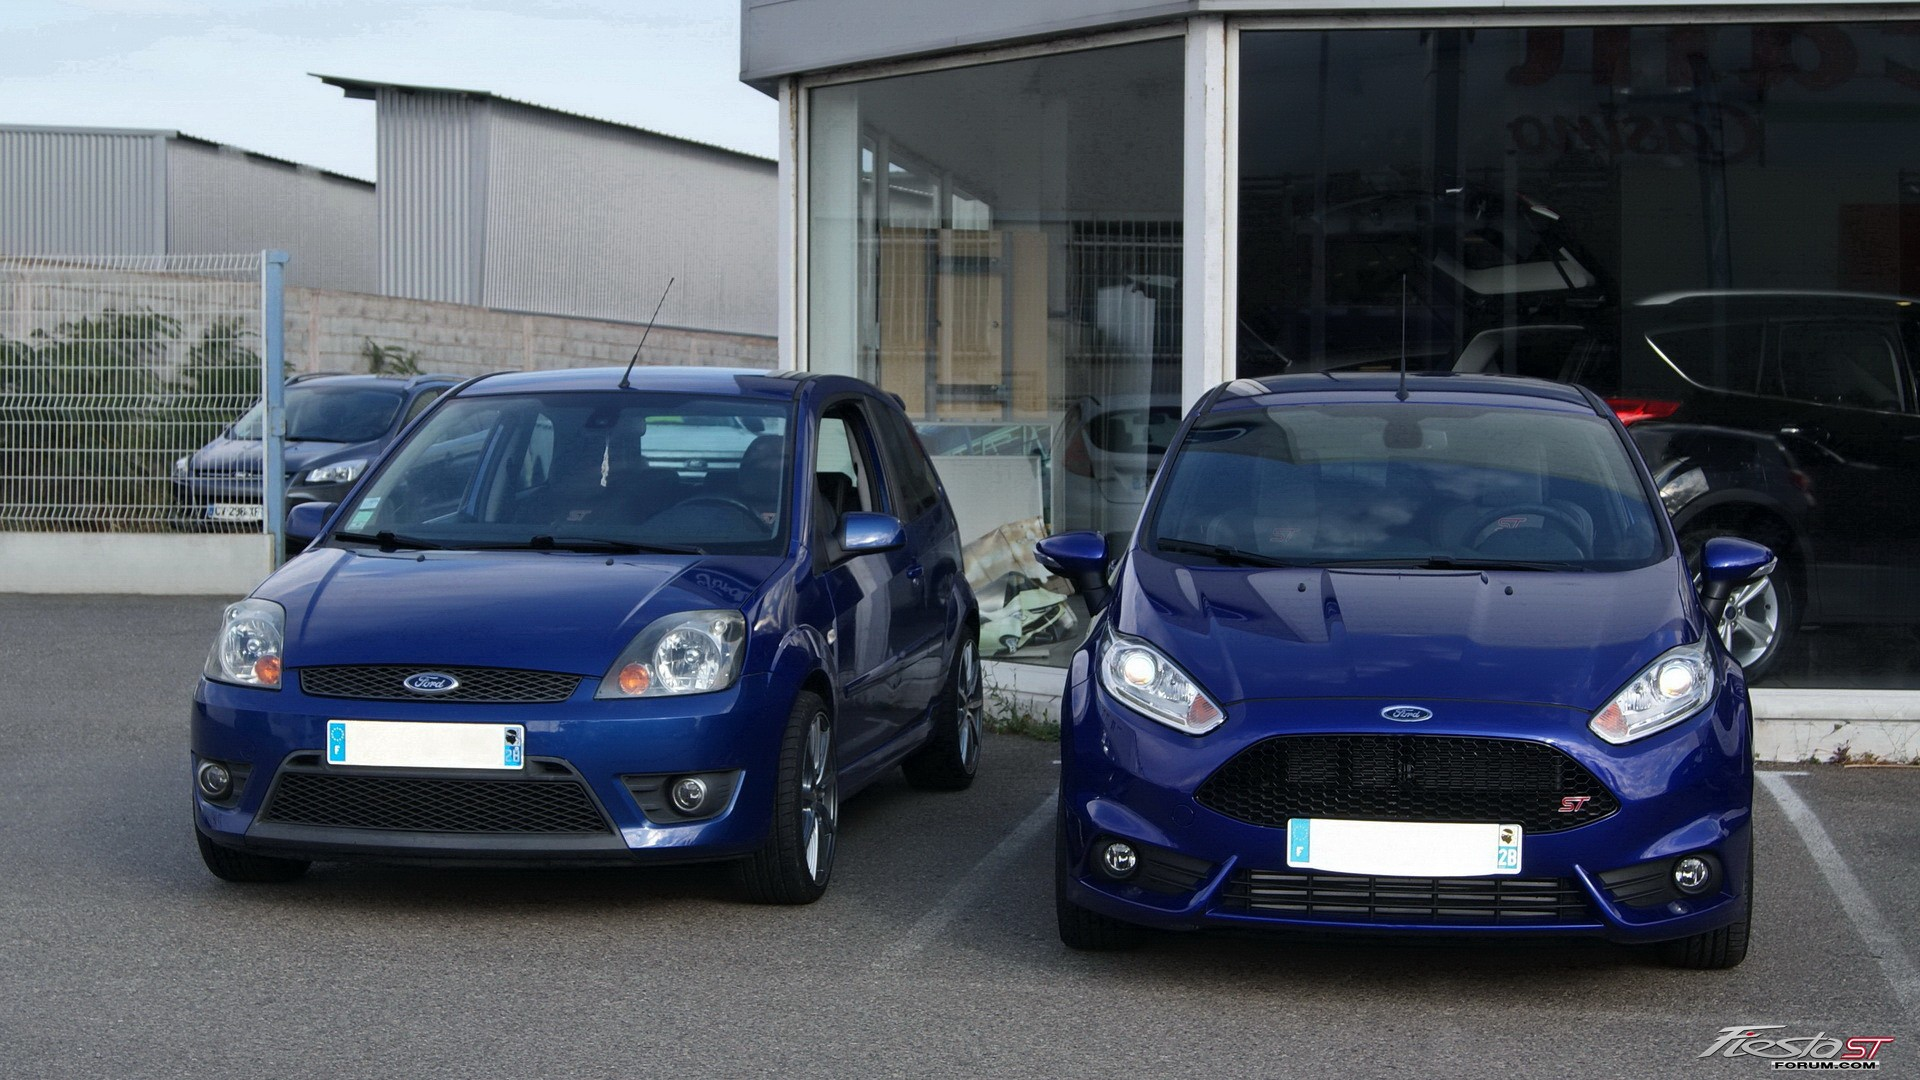 Fiesta St Forum >> Fiesta ST150 and the new Fiesta ST182 - Fiesta ST Gallery, Pictures, Images, Wallpapers by ...